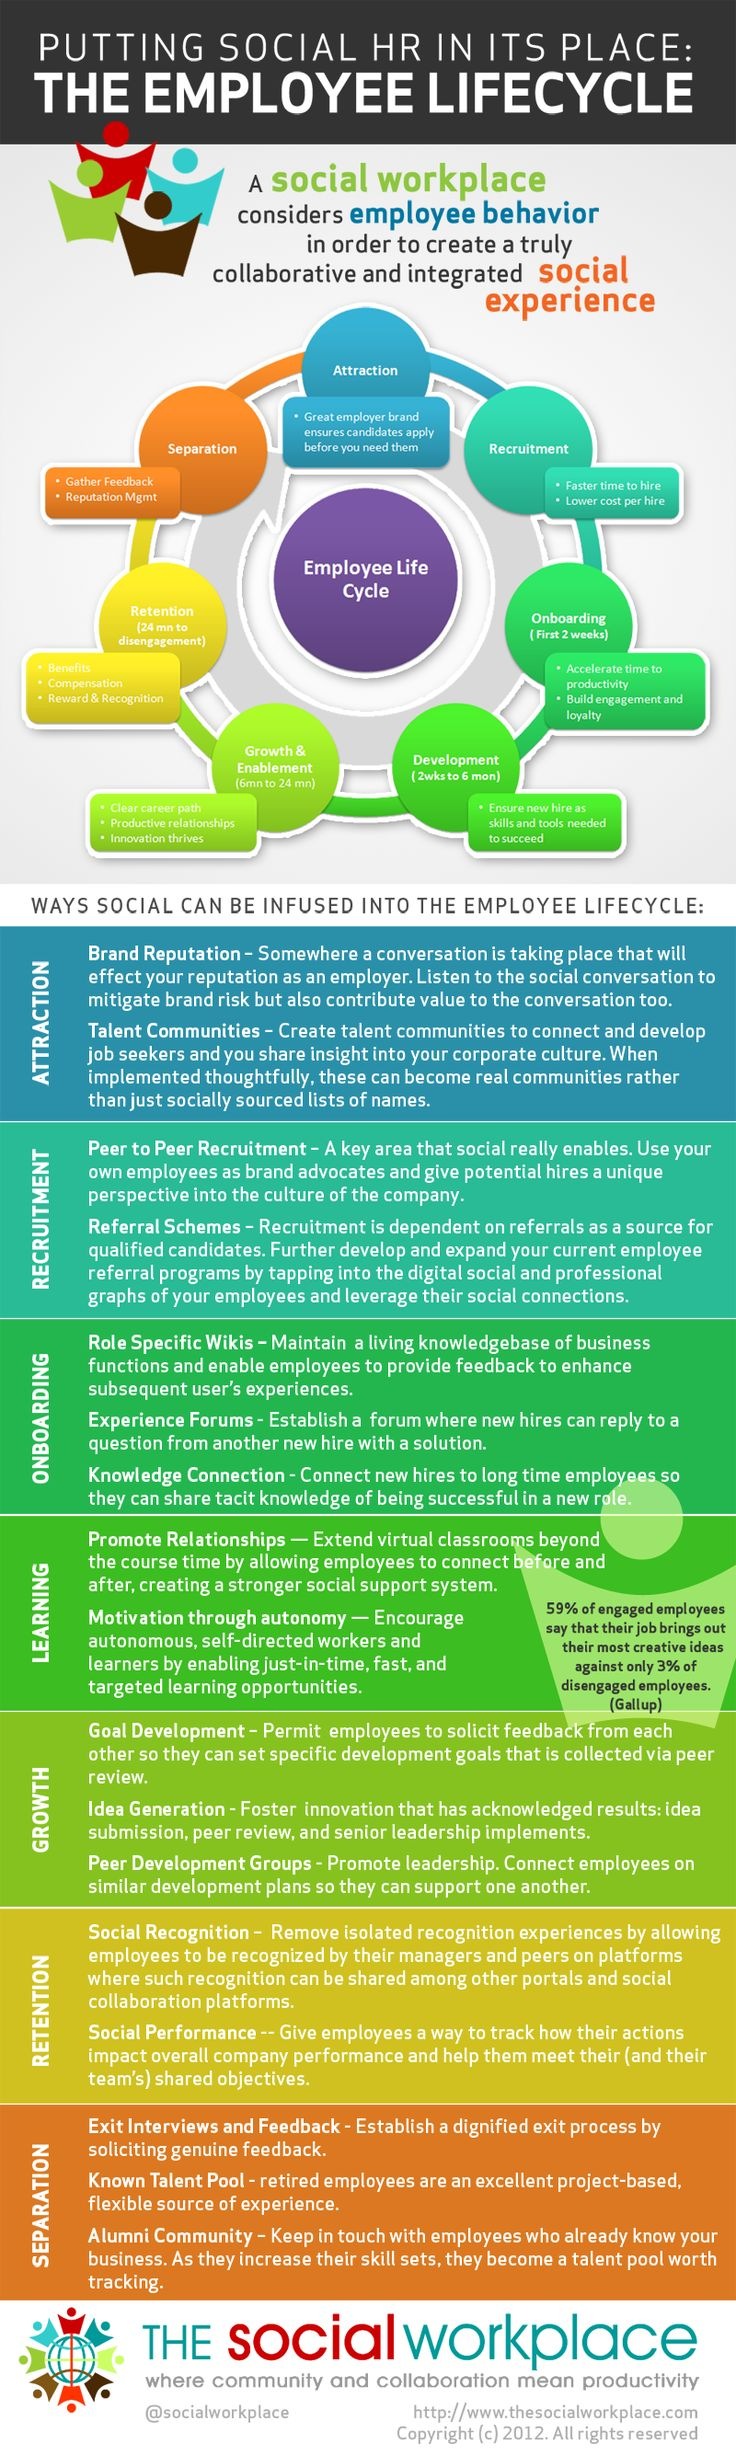 Putting Social HR in its Place: The Employee Lifecycle.  Some pretty neat tips and facts here. Learn how to use social media for your human resource needs.